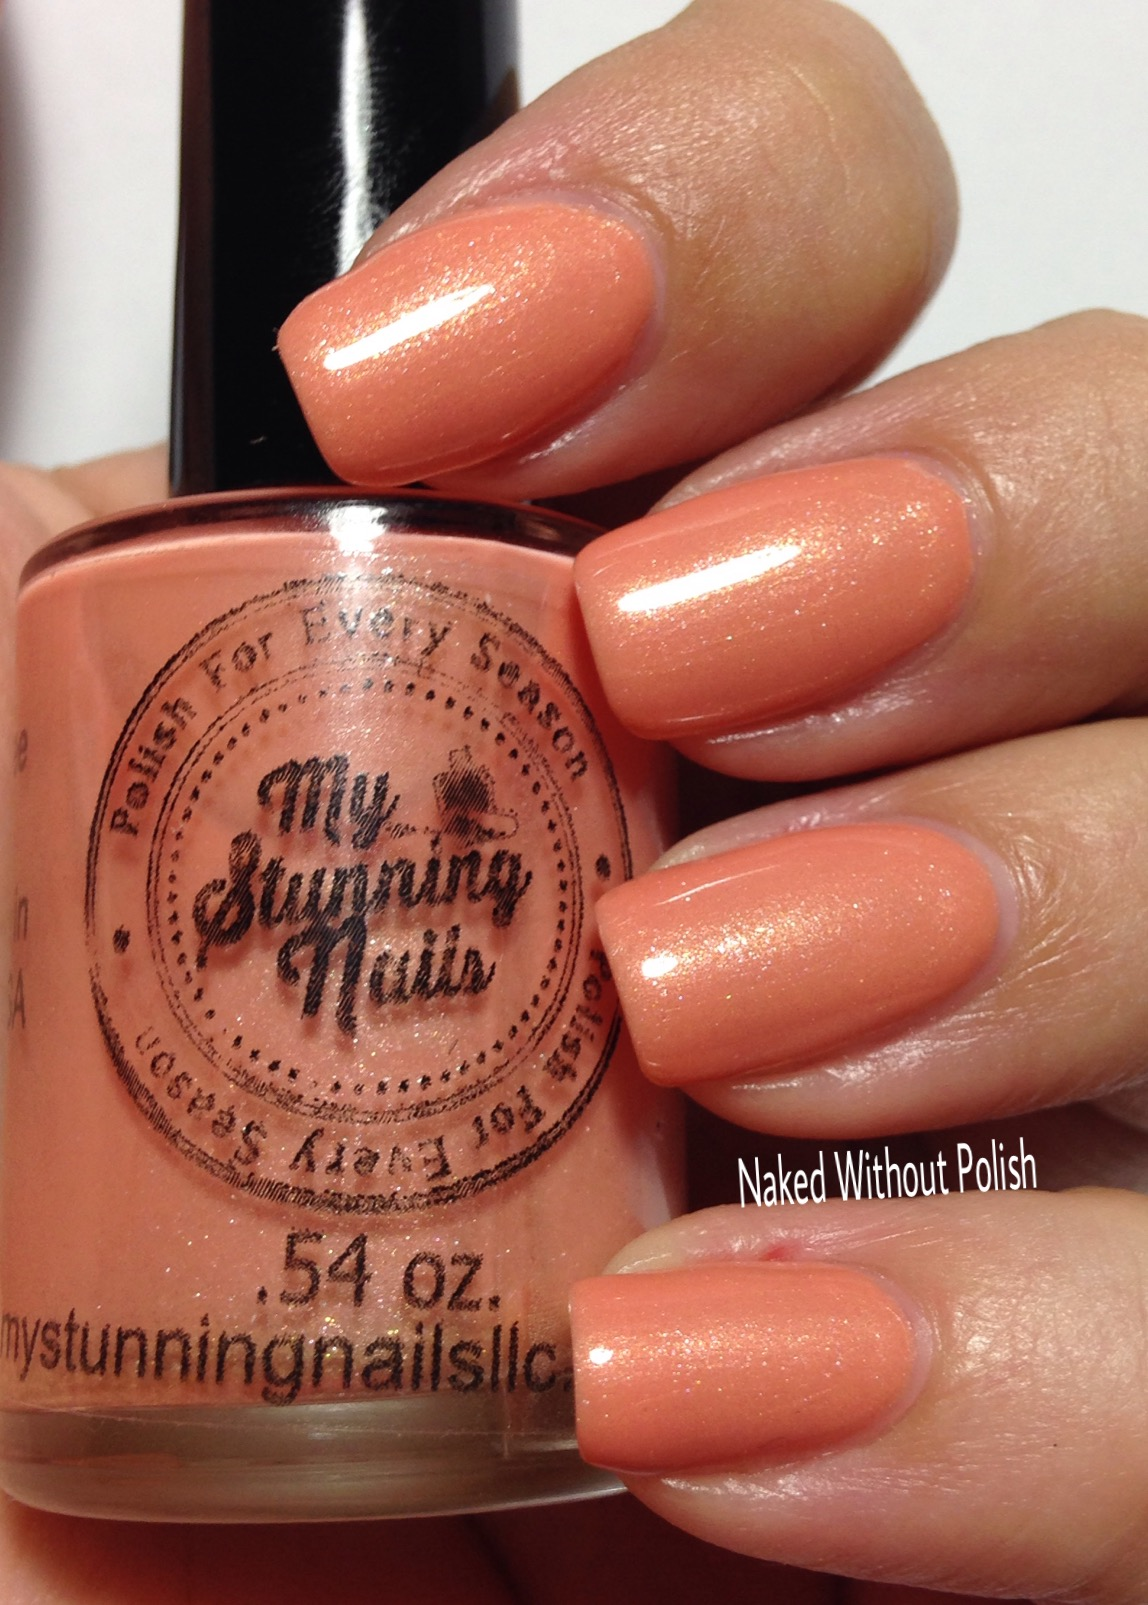 Polish-Pickup-My-Stunning-Nails-Soft-Fire-11